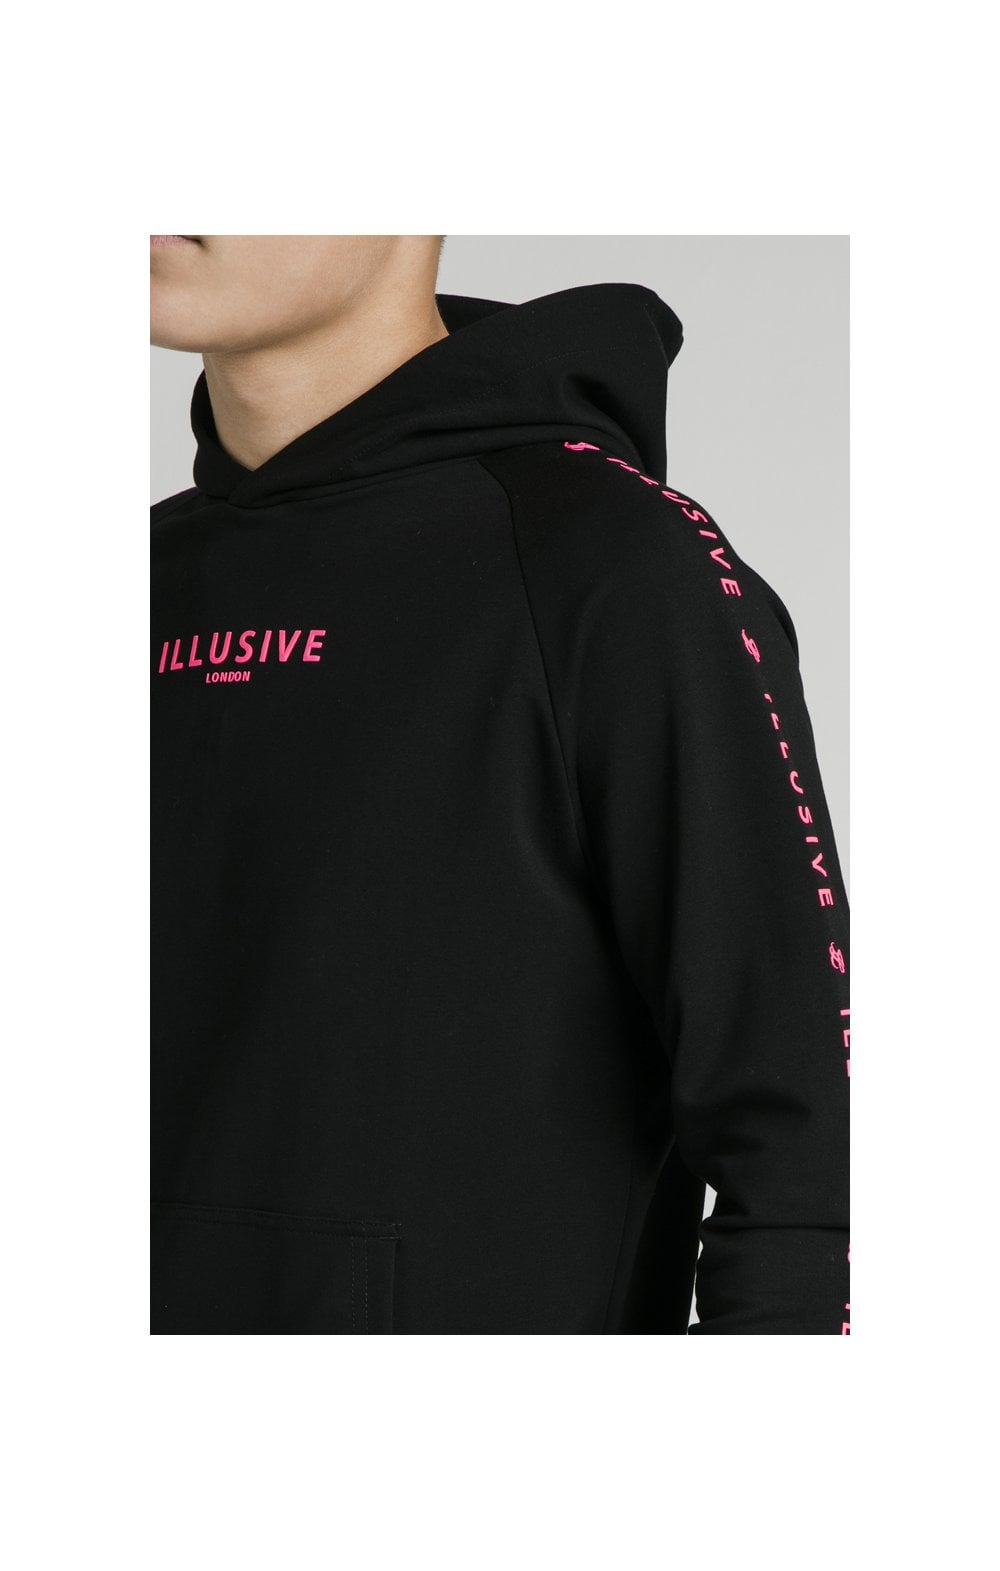 Illusive London Overhead Hoodie - Black & Neon Pink